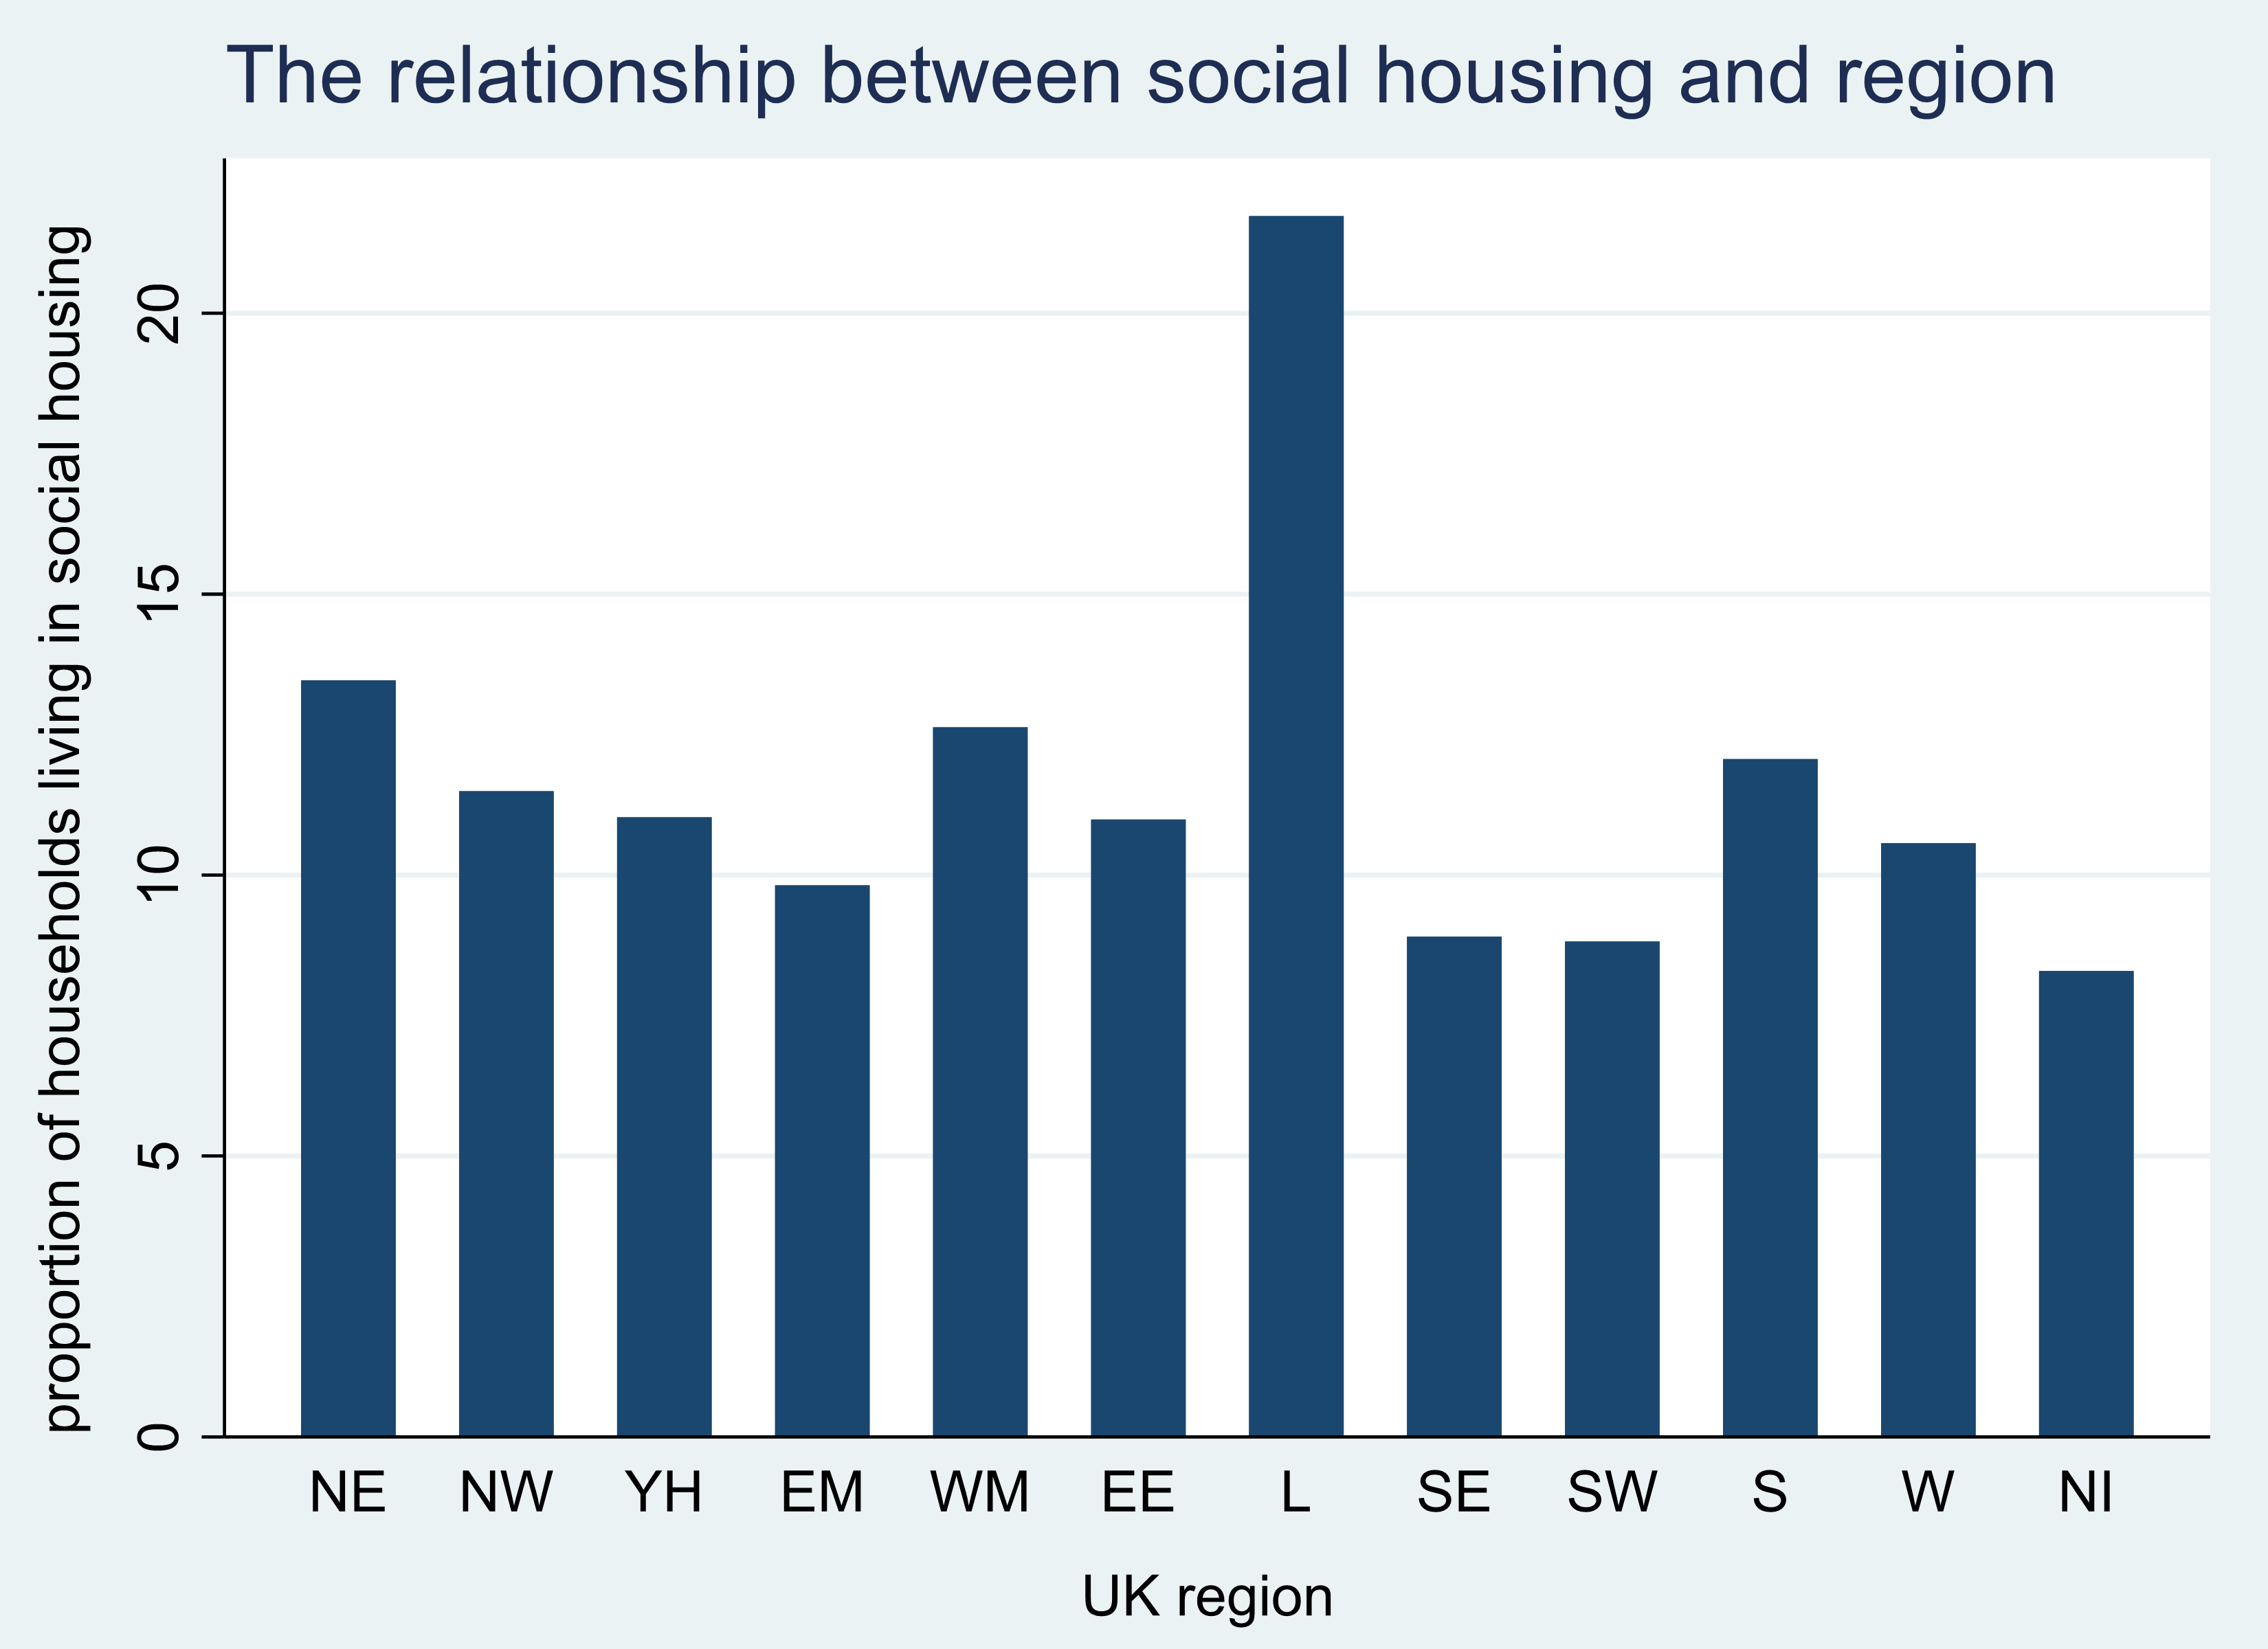 Column chart showing the proportion of households living in social housing by region. Values range from 8% in Northern Ireland to 22% in London. Further detail is described in the text of the page.